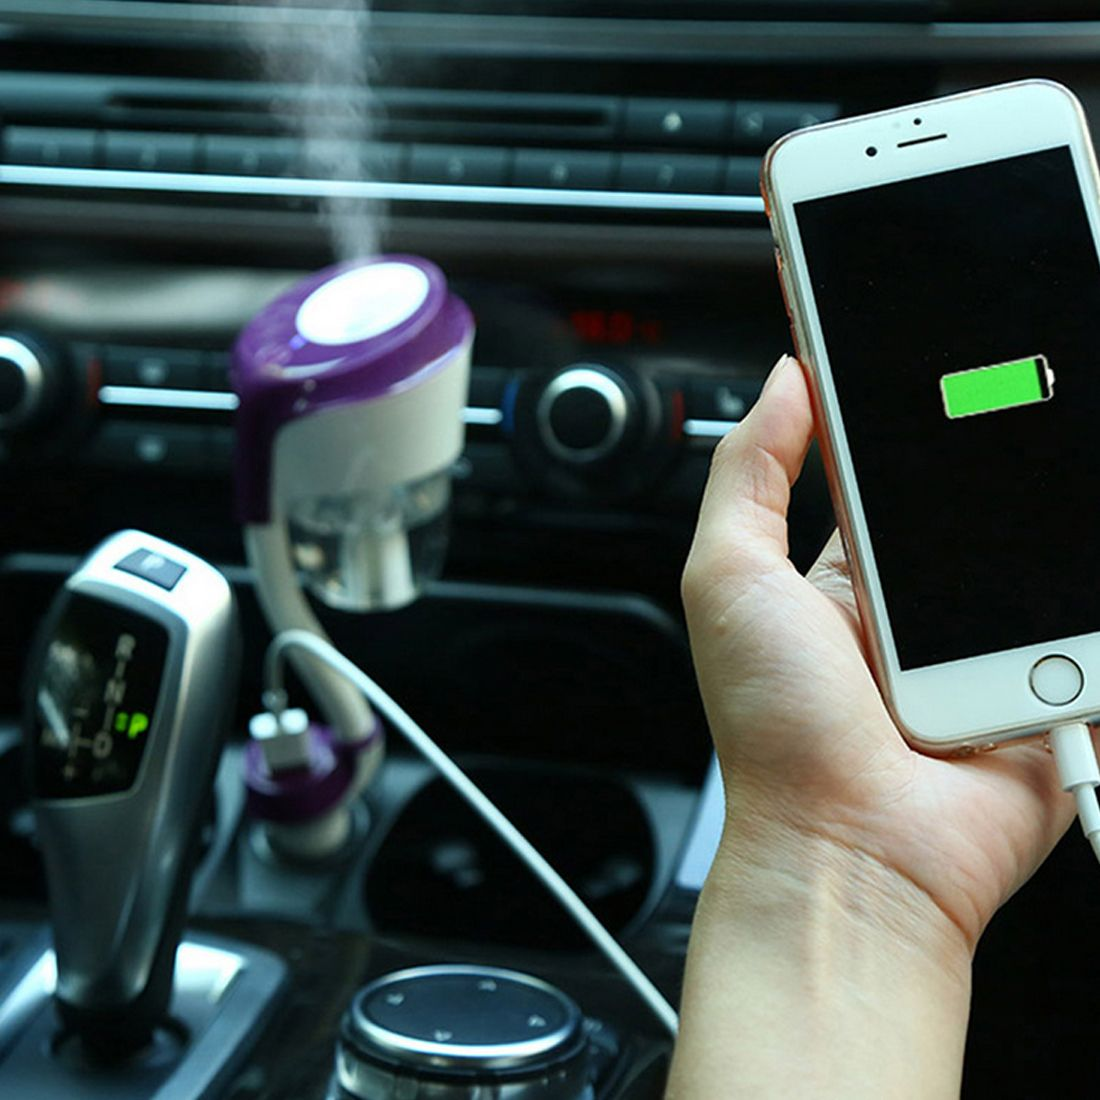 NANUM 12V II Car Steam Humidifier with 2pc Car Charger USB,Air Purifier Aroma Oil Diffuser Aromatherapy Mist Maker Fogger